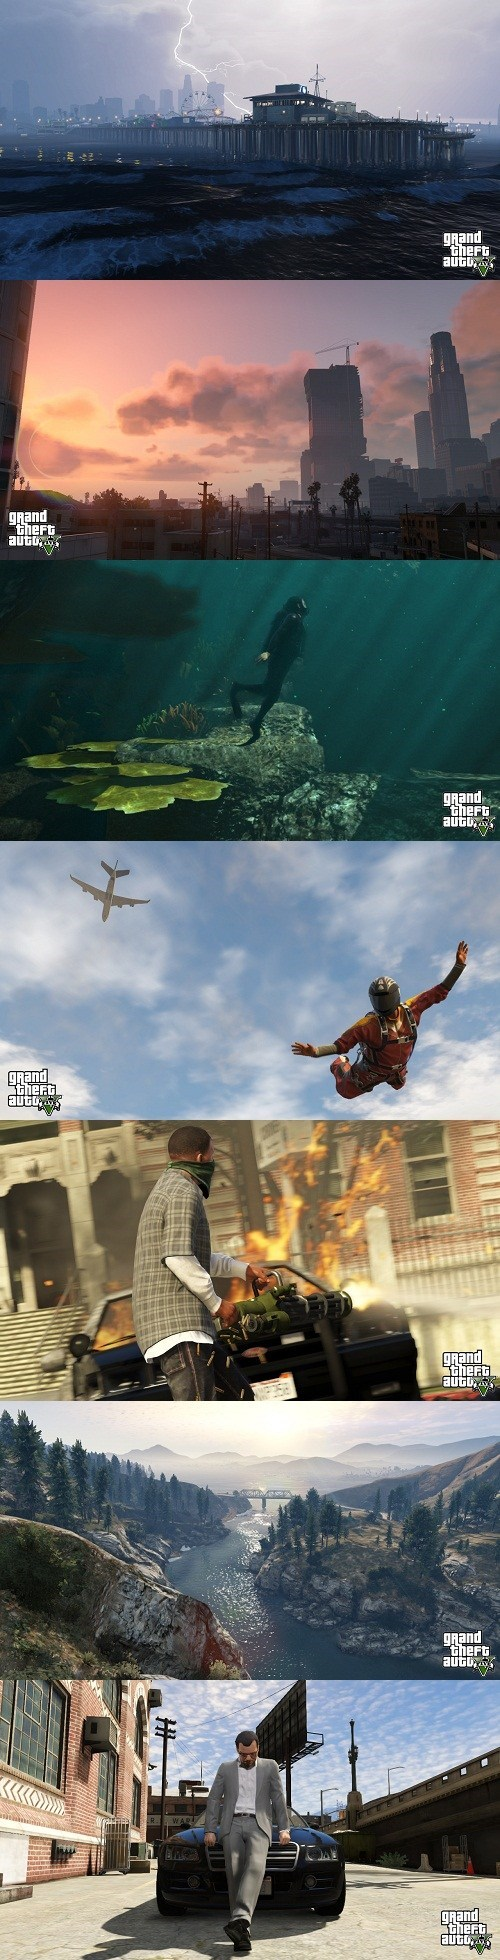 grand theft auto v screenshots video games Rockstar Games - 7170786304